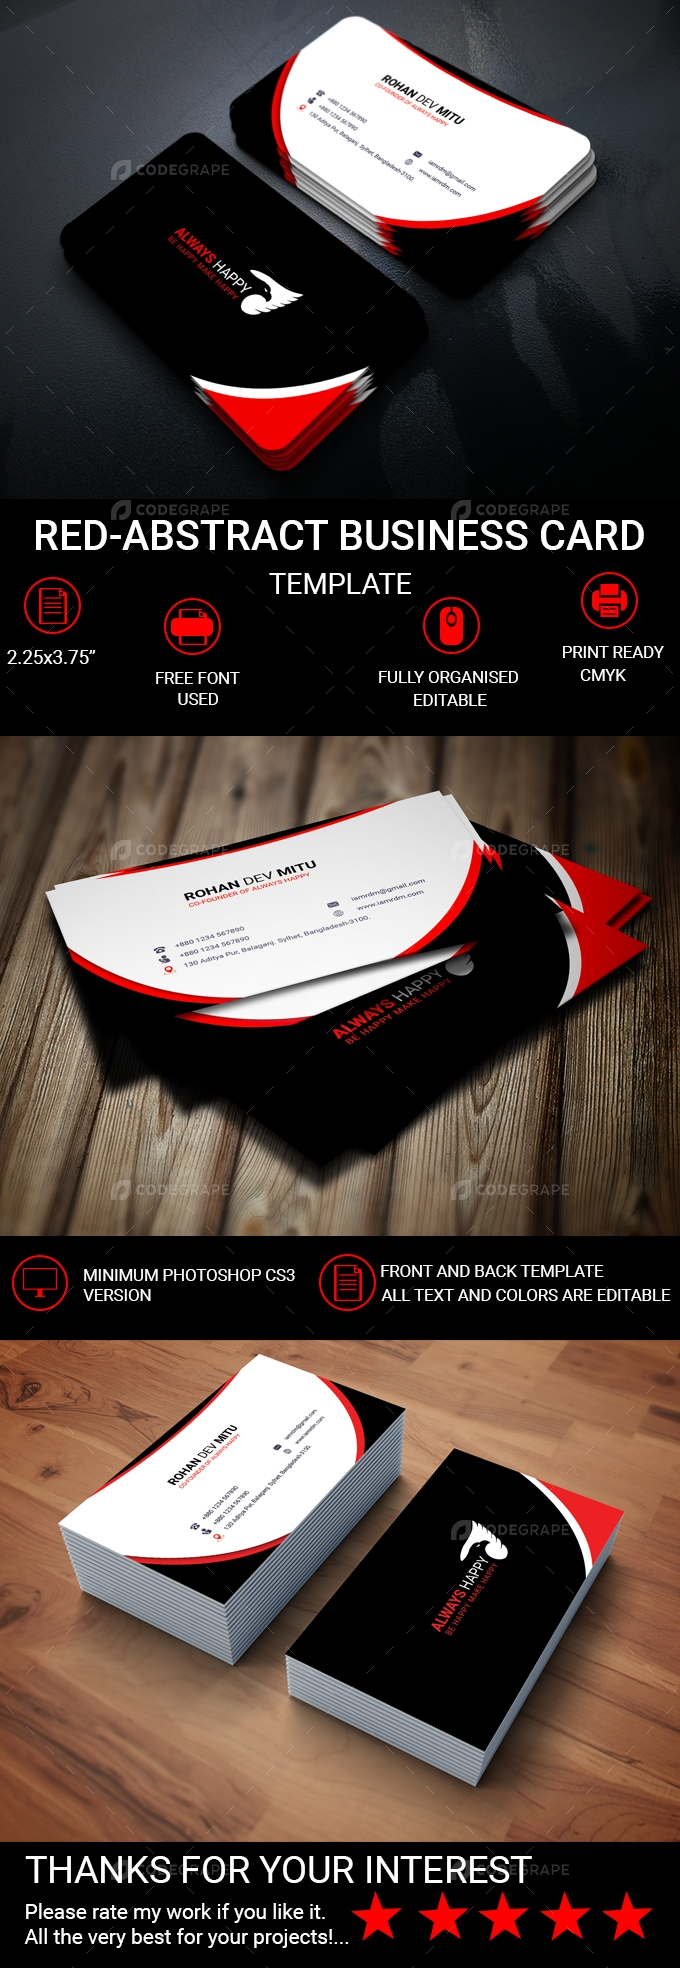 Red-Abstract Business Card